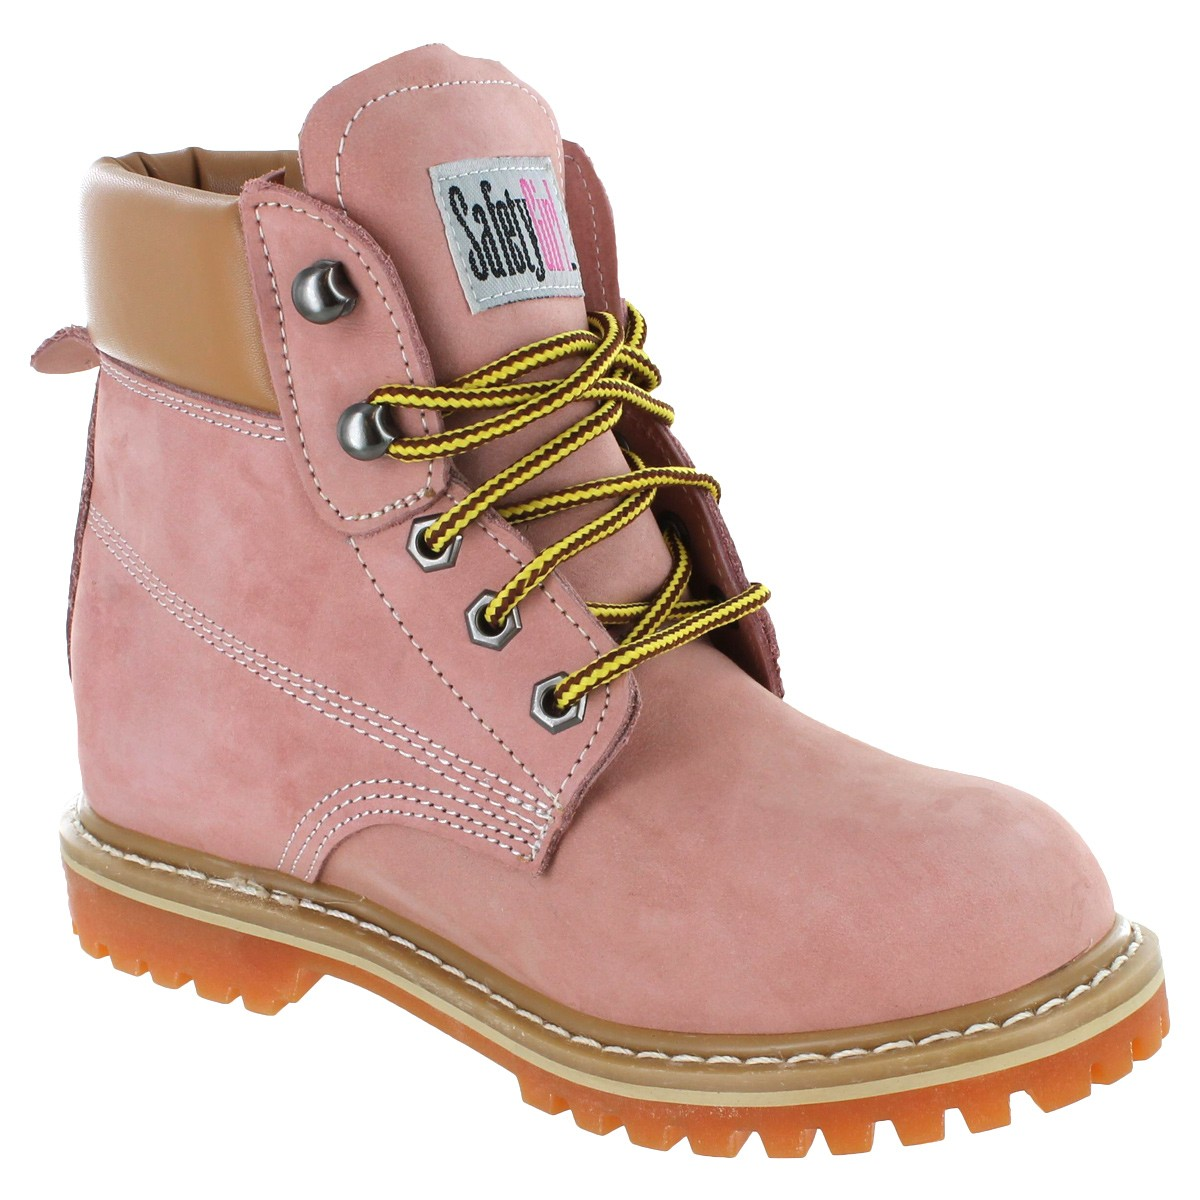 Womens Work Boots Cheap - Yu Boots